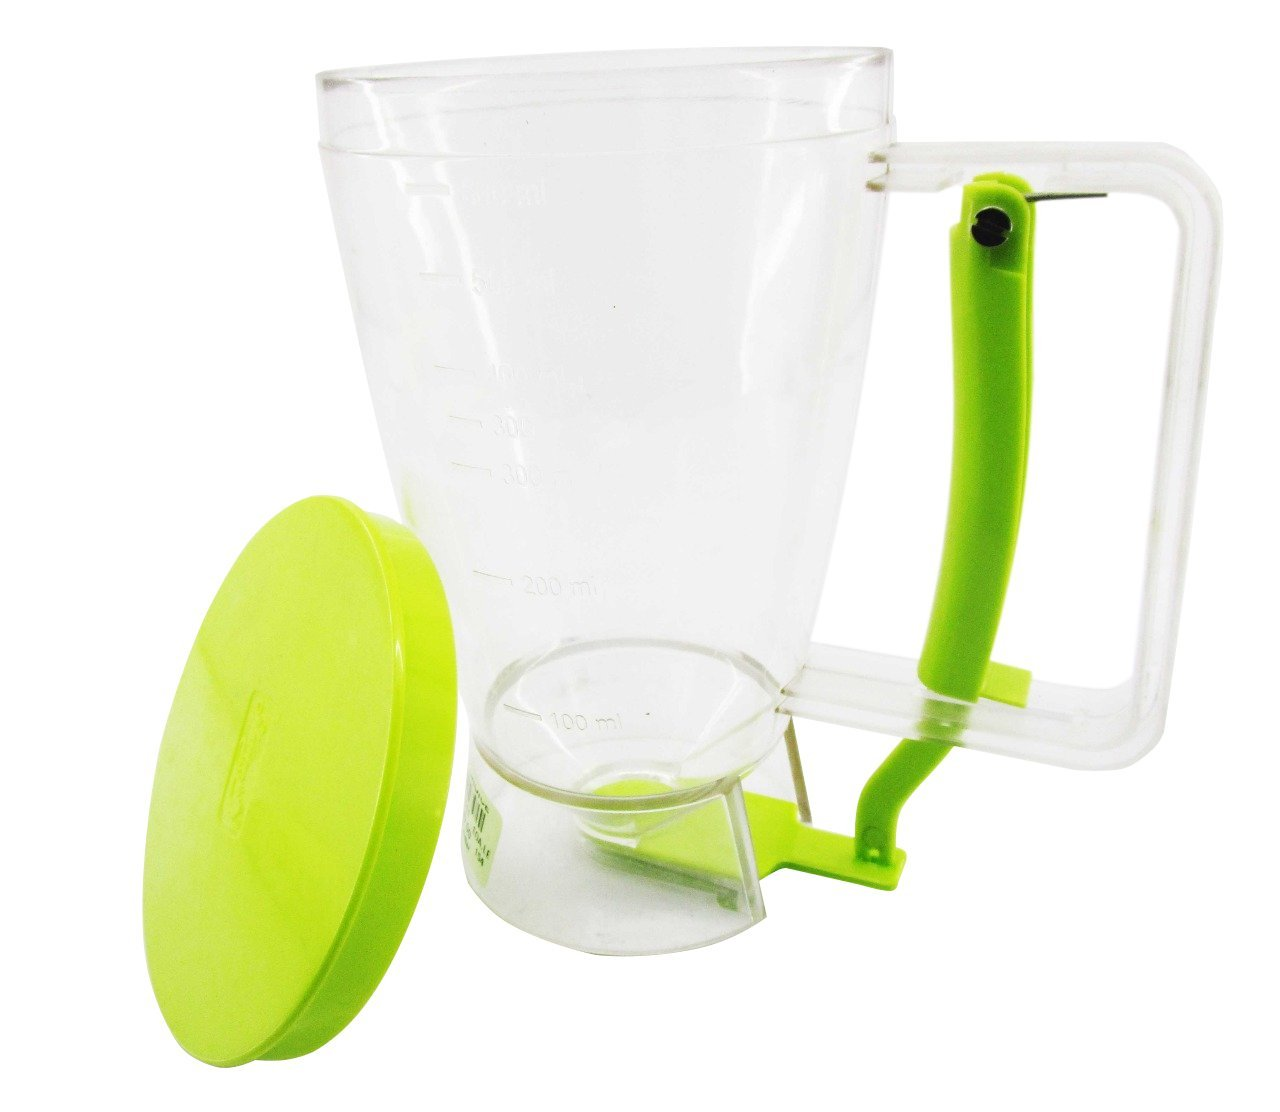 Kitchen Tools - Spincart Idli, Besan Batter Dispenser - Unnati Enterprises